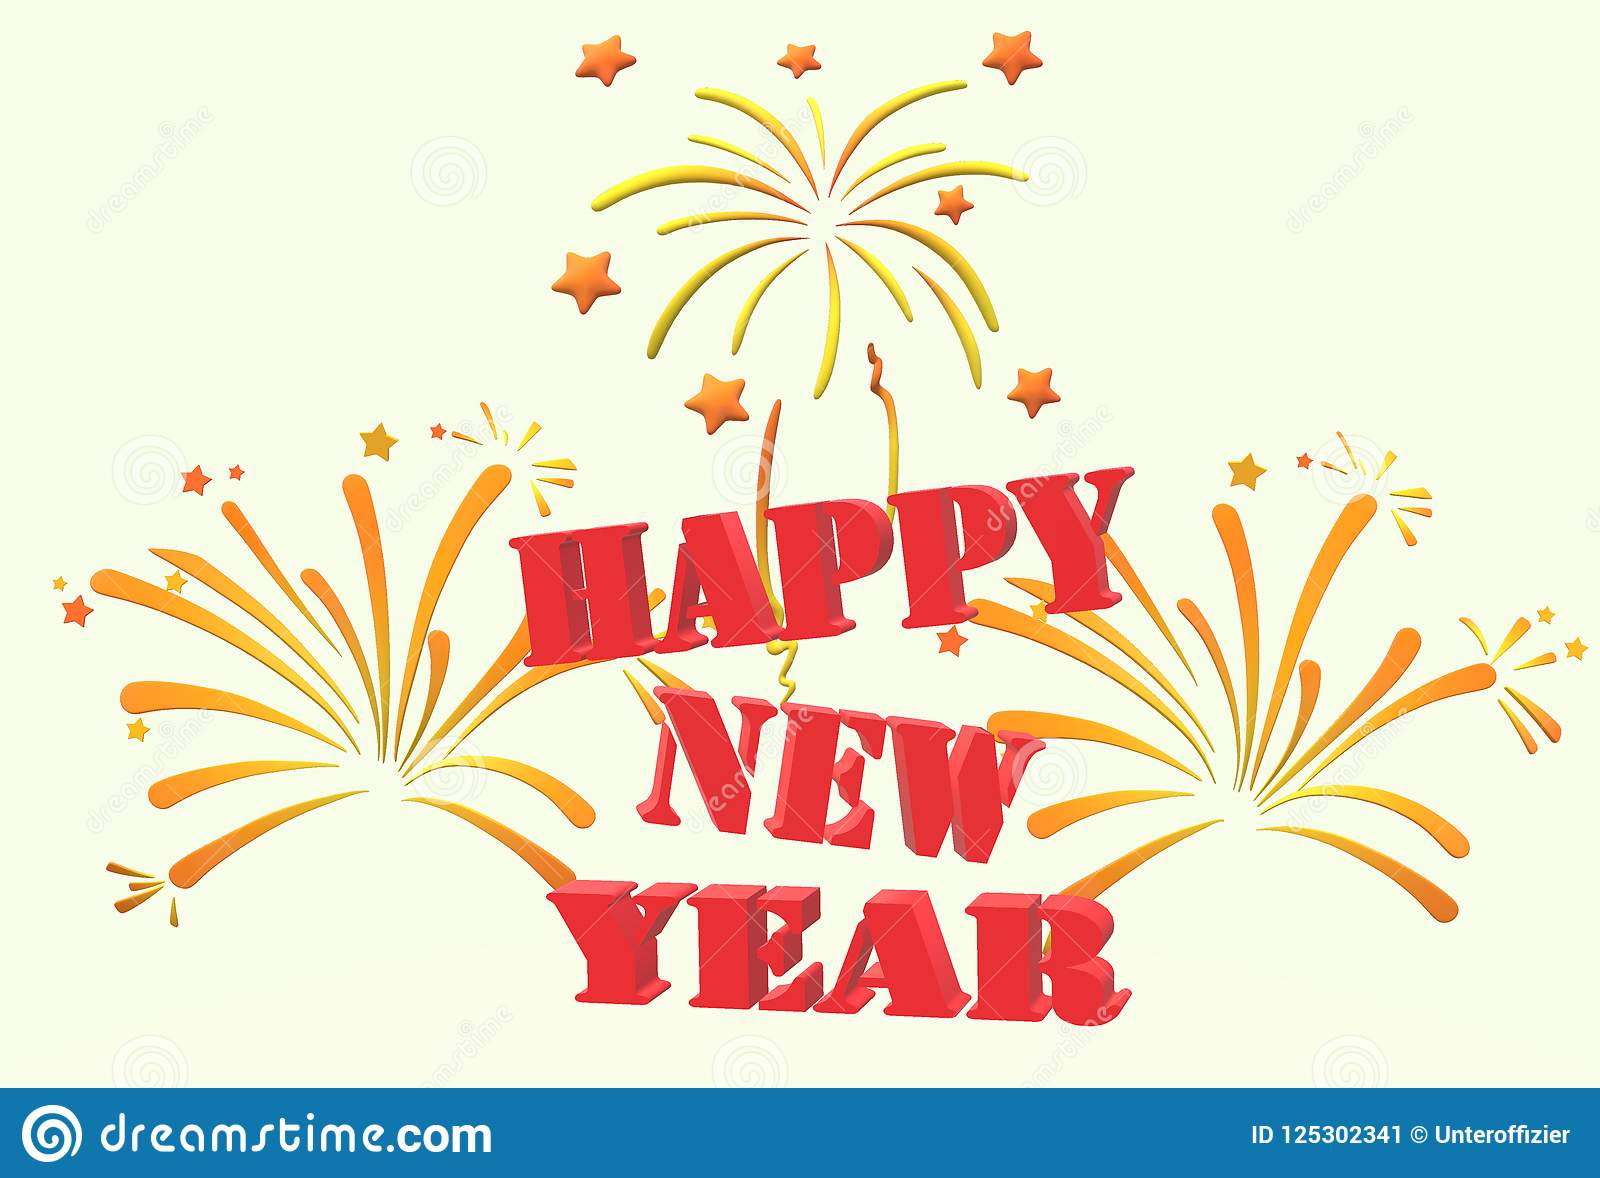 A happy new year greeting poster card featuring fireworks